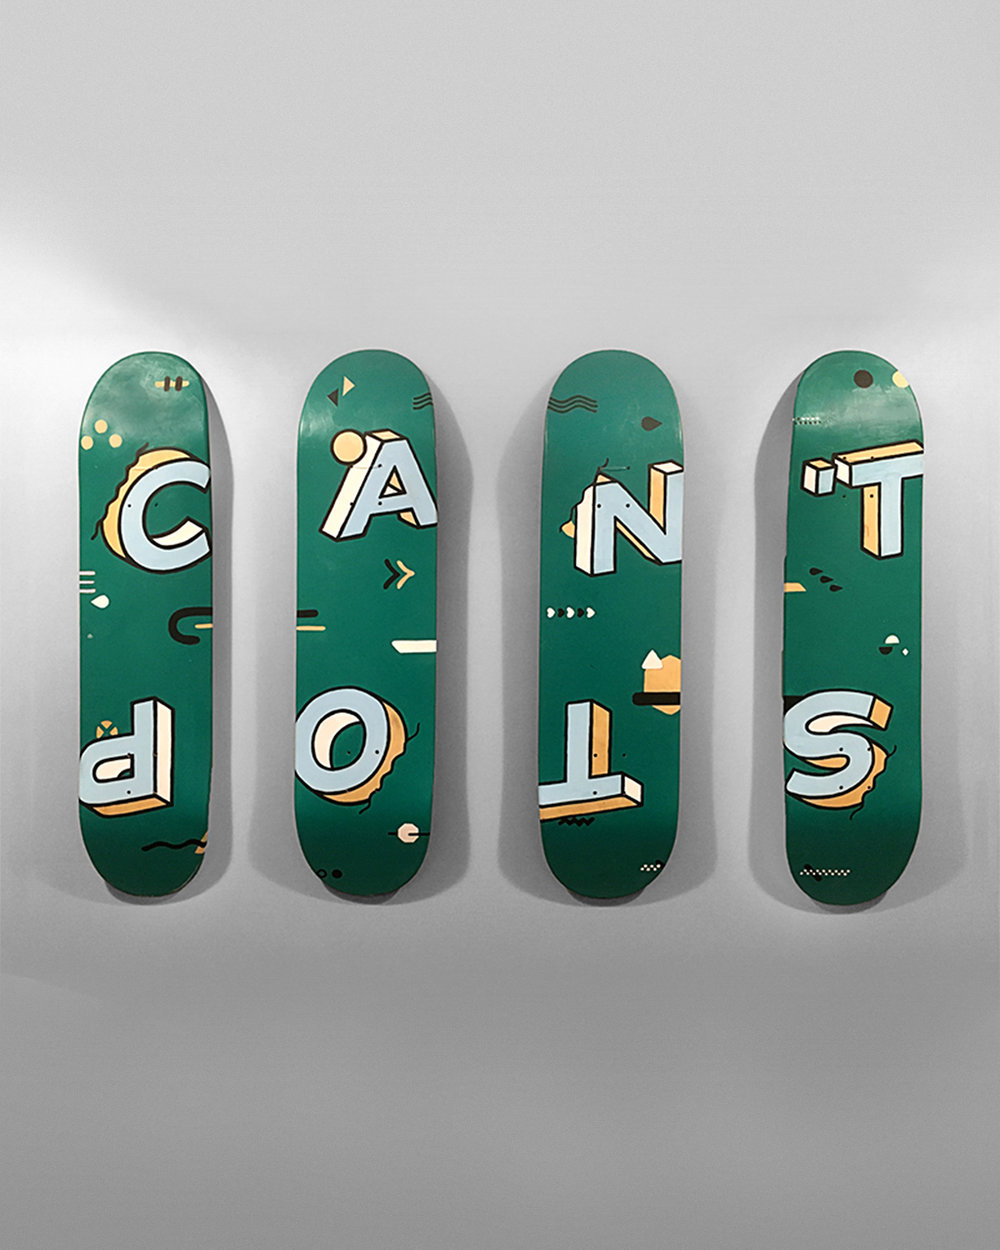 efdot-cant-stop-skateboards-1024x1280.jpg